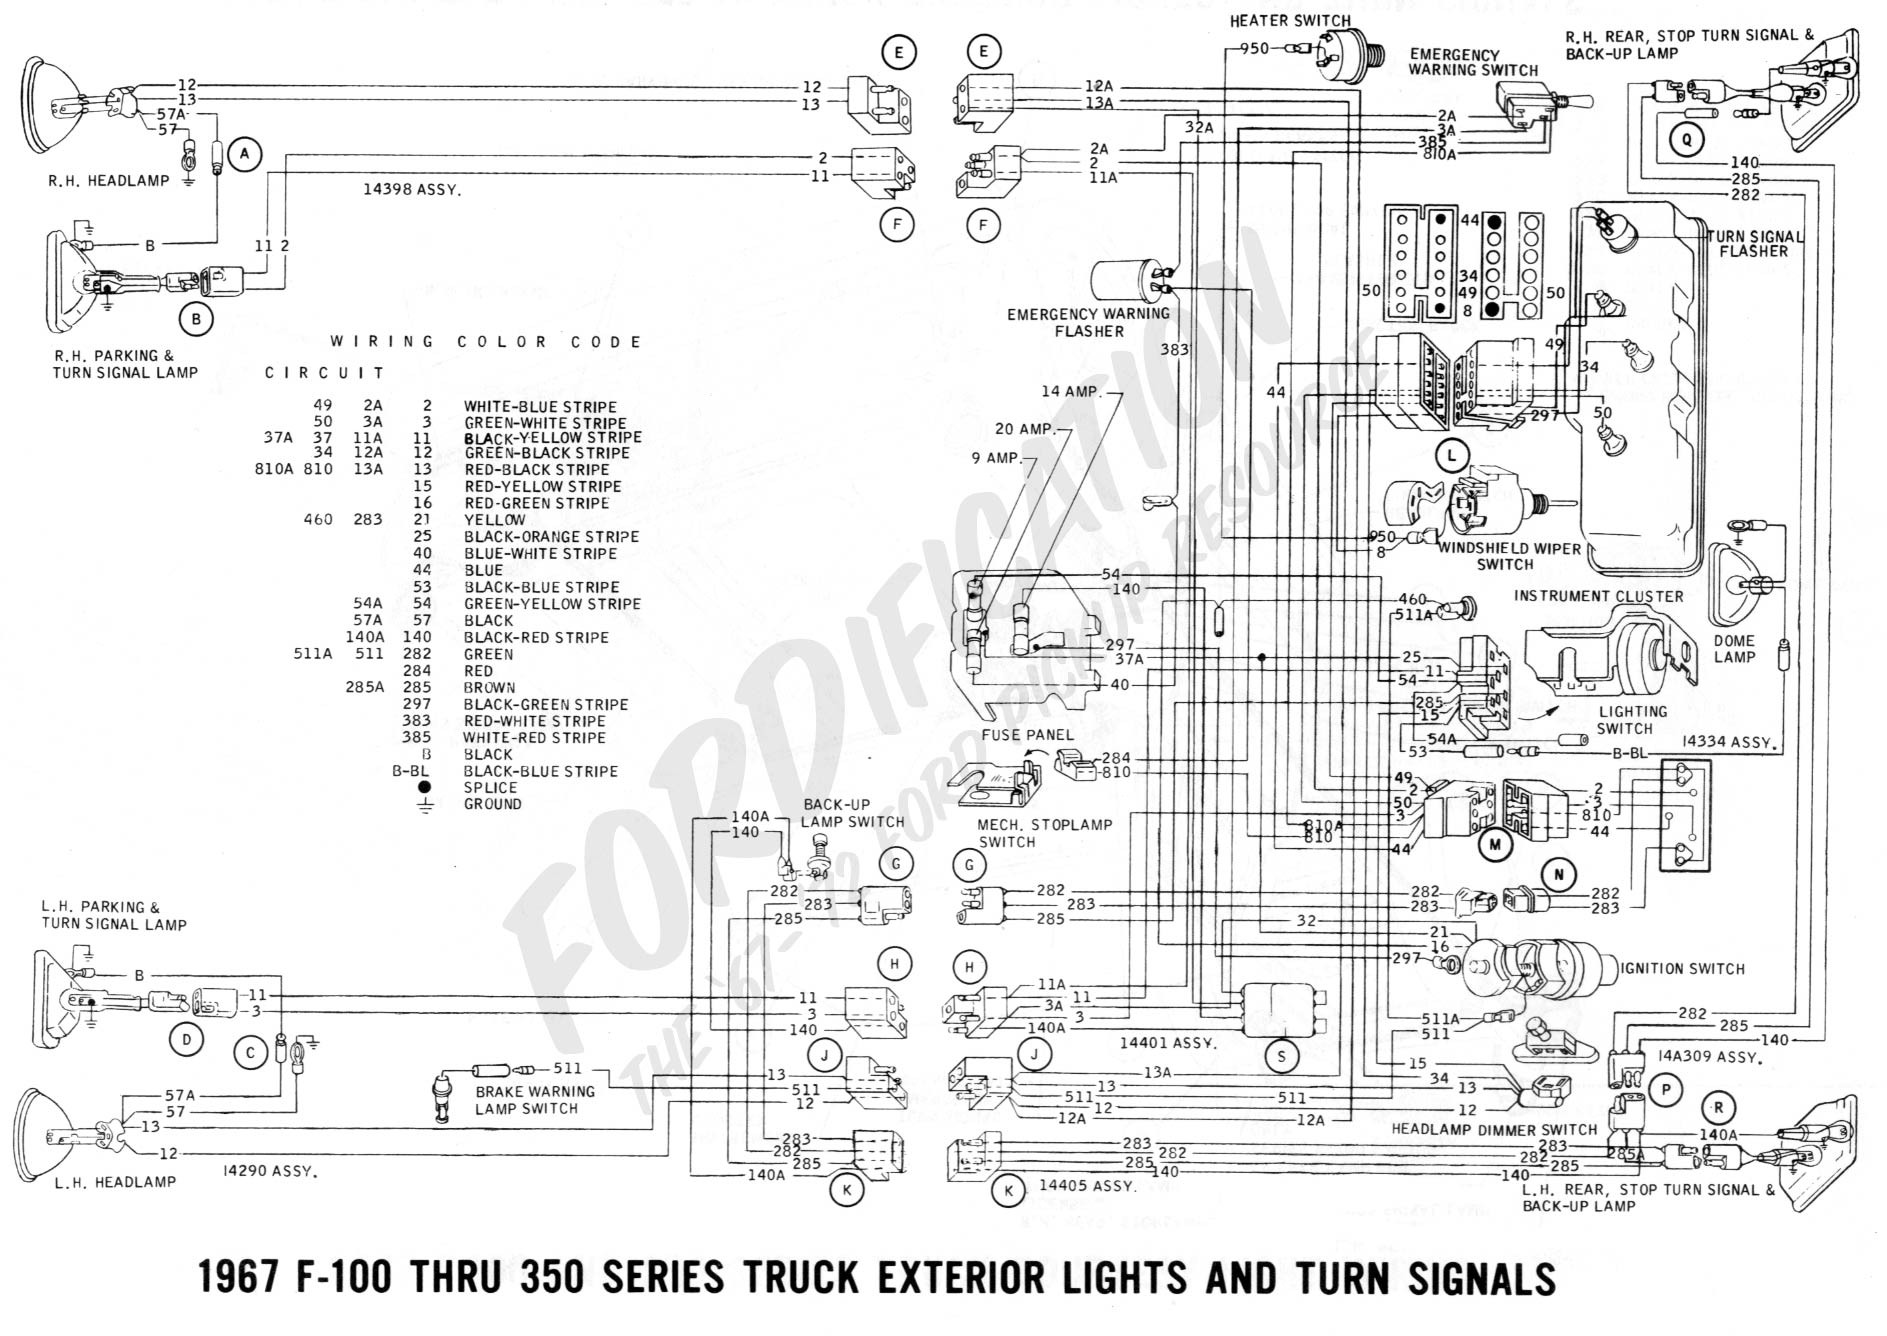 2000 Ford F350 Tail Light Wiring Diagram Image 96 F 350 Online Schematic U2022 Rh Epicstore Co Truck